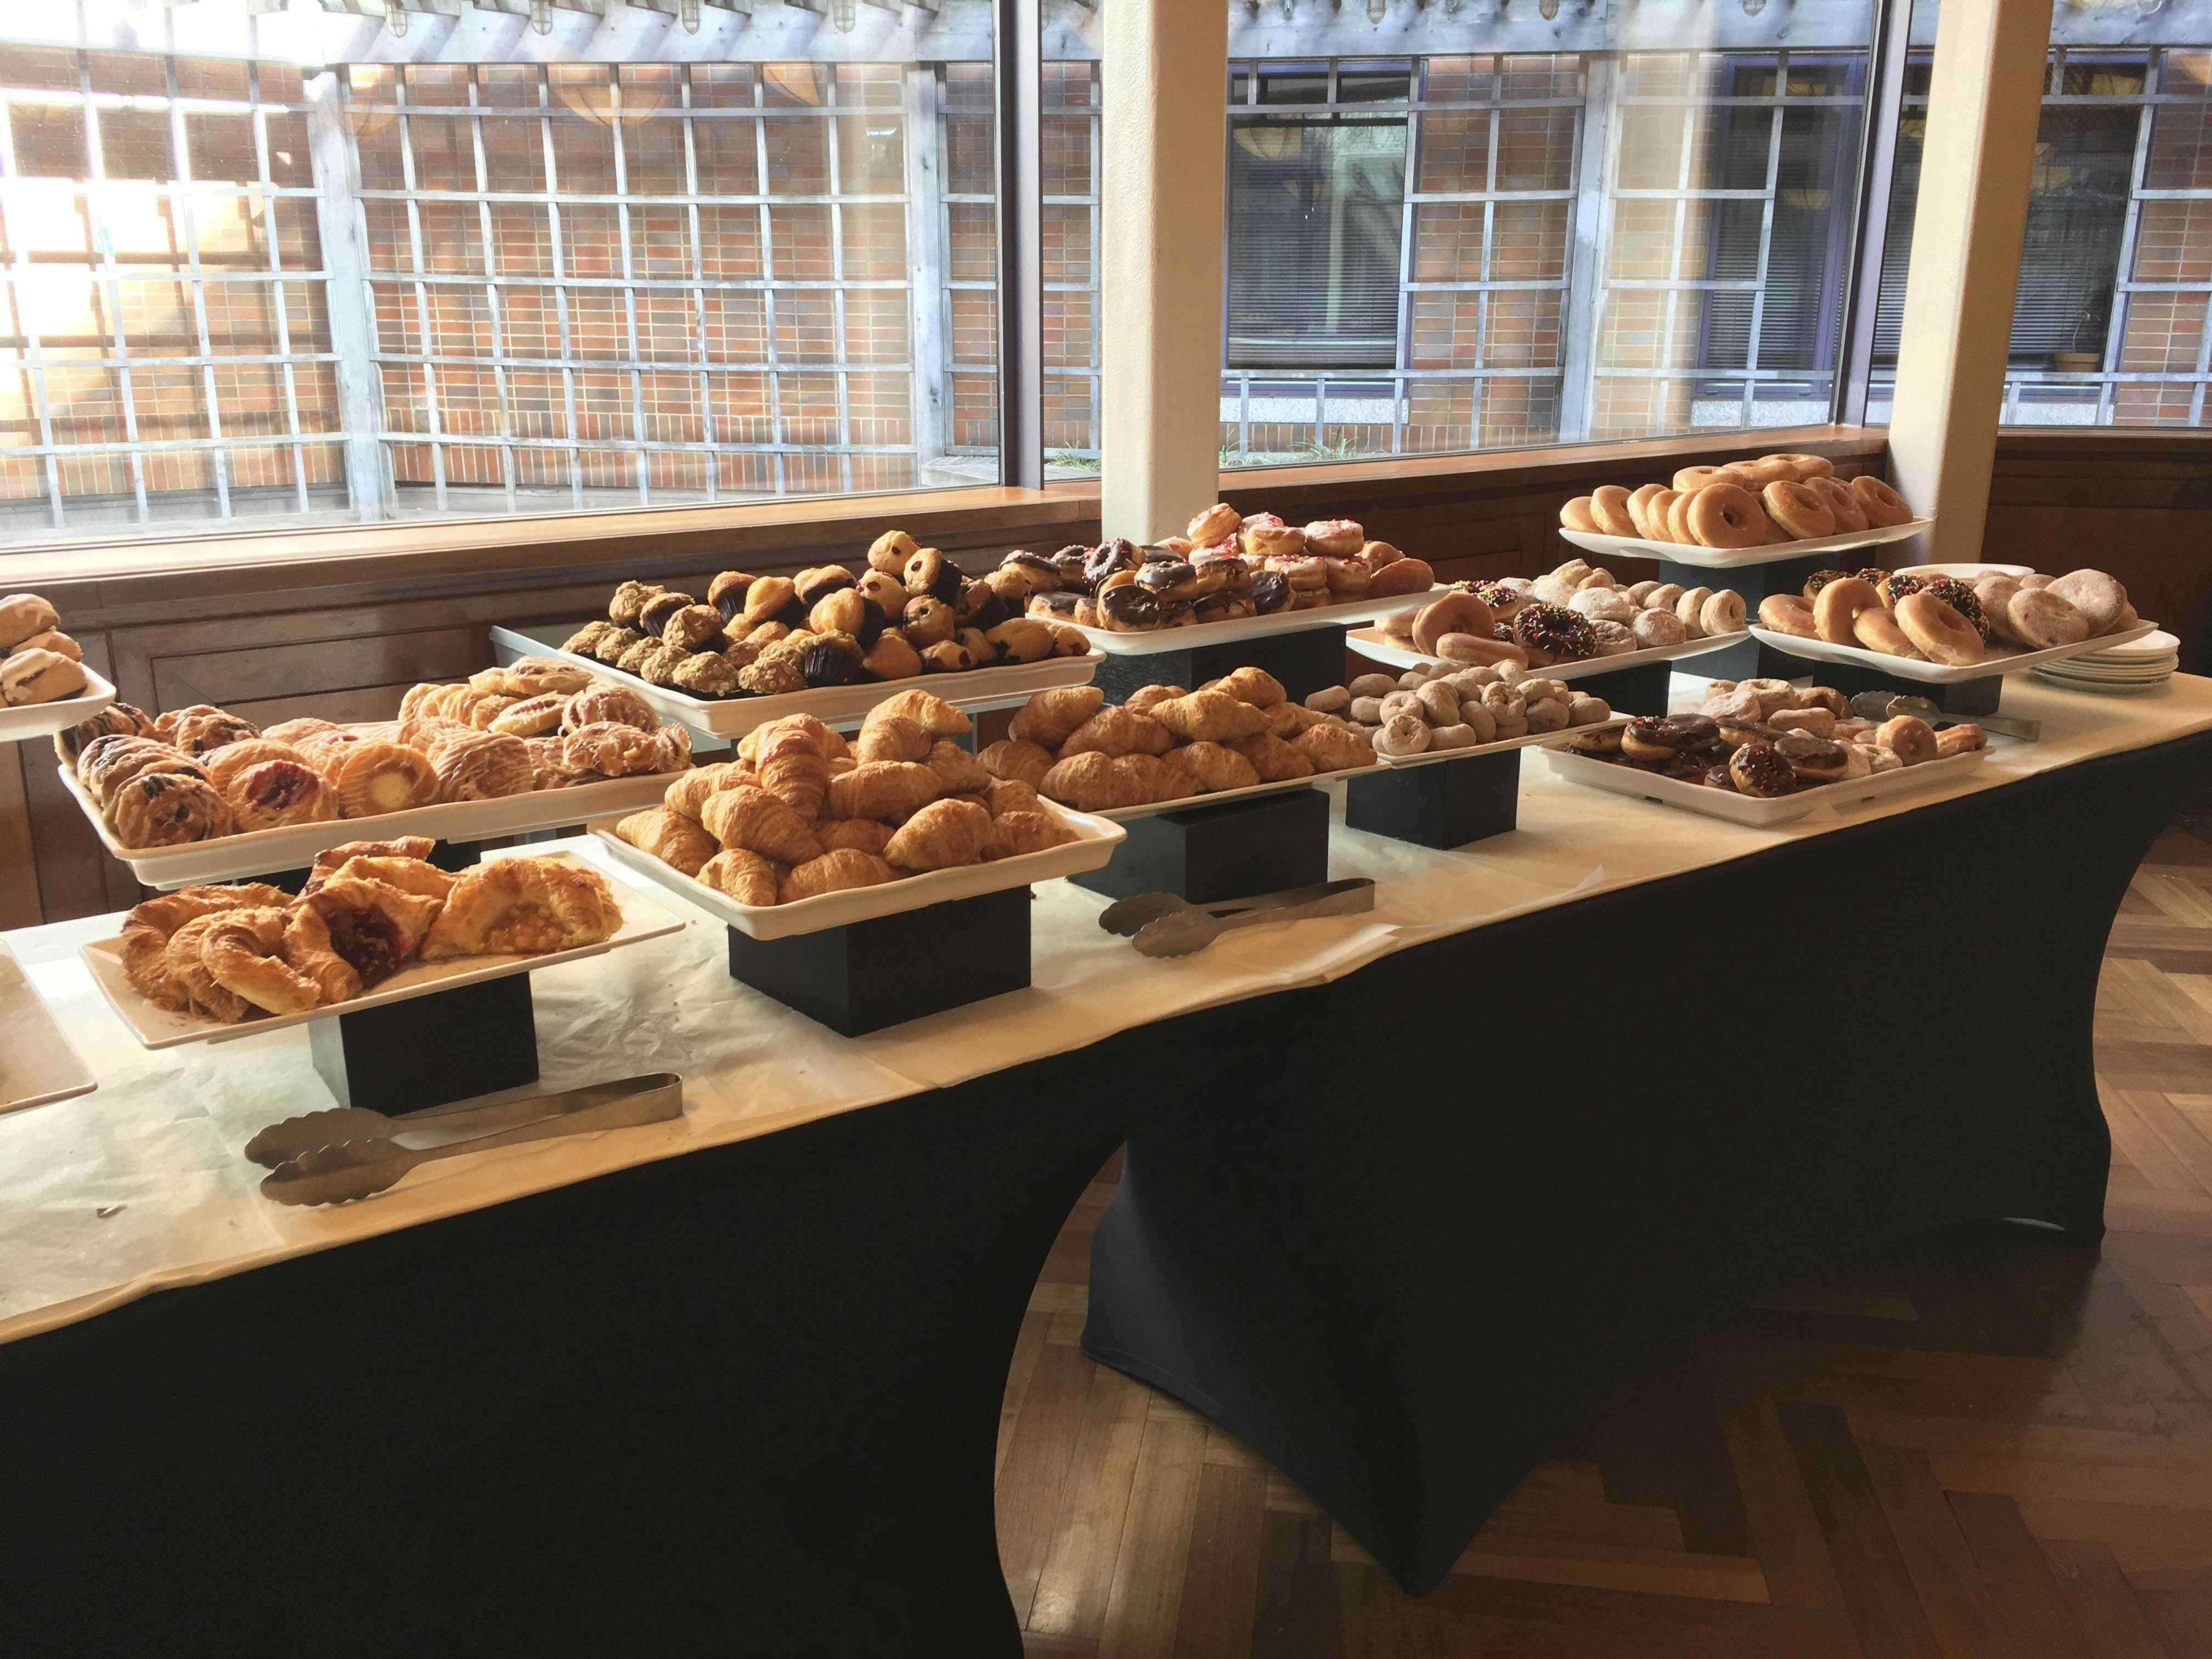 Get your sweet tooth on by visiting some amazing bakeries around the dining halls, ranging from Baked by Melissa to The City Bakery.